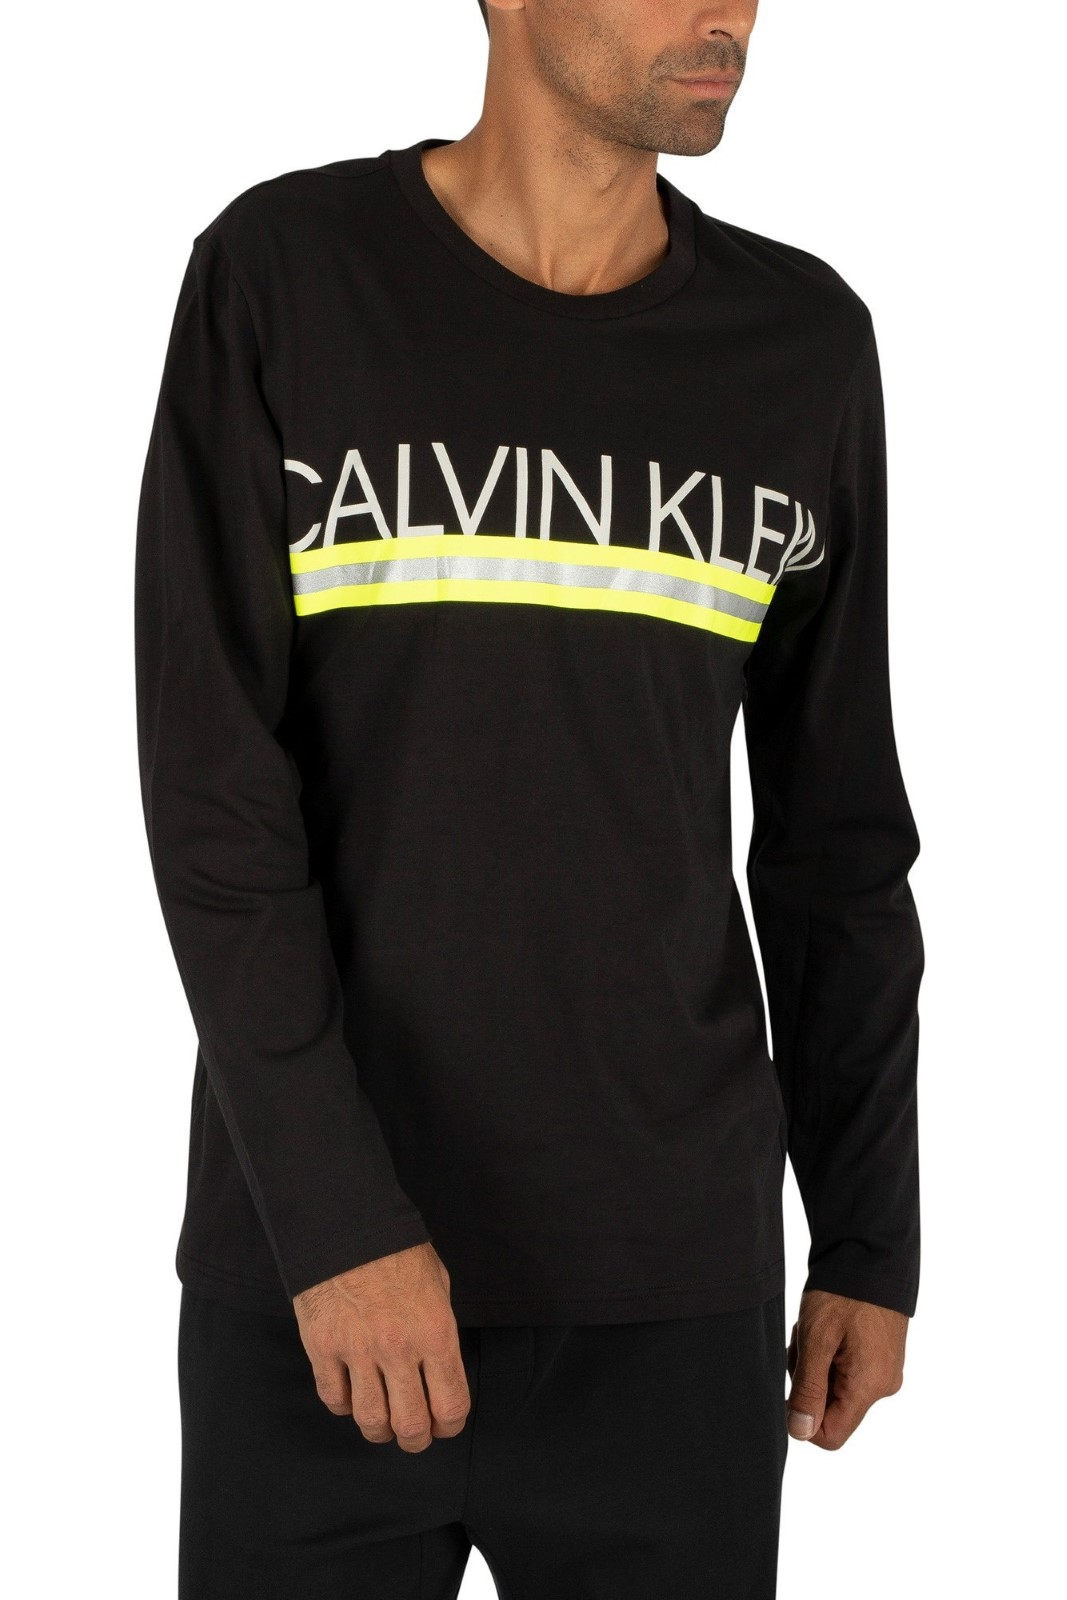 Calvin Klein black men´s t-shirt L/S Crew Neck with logo